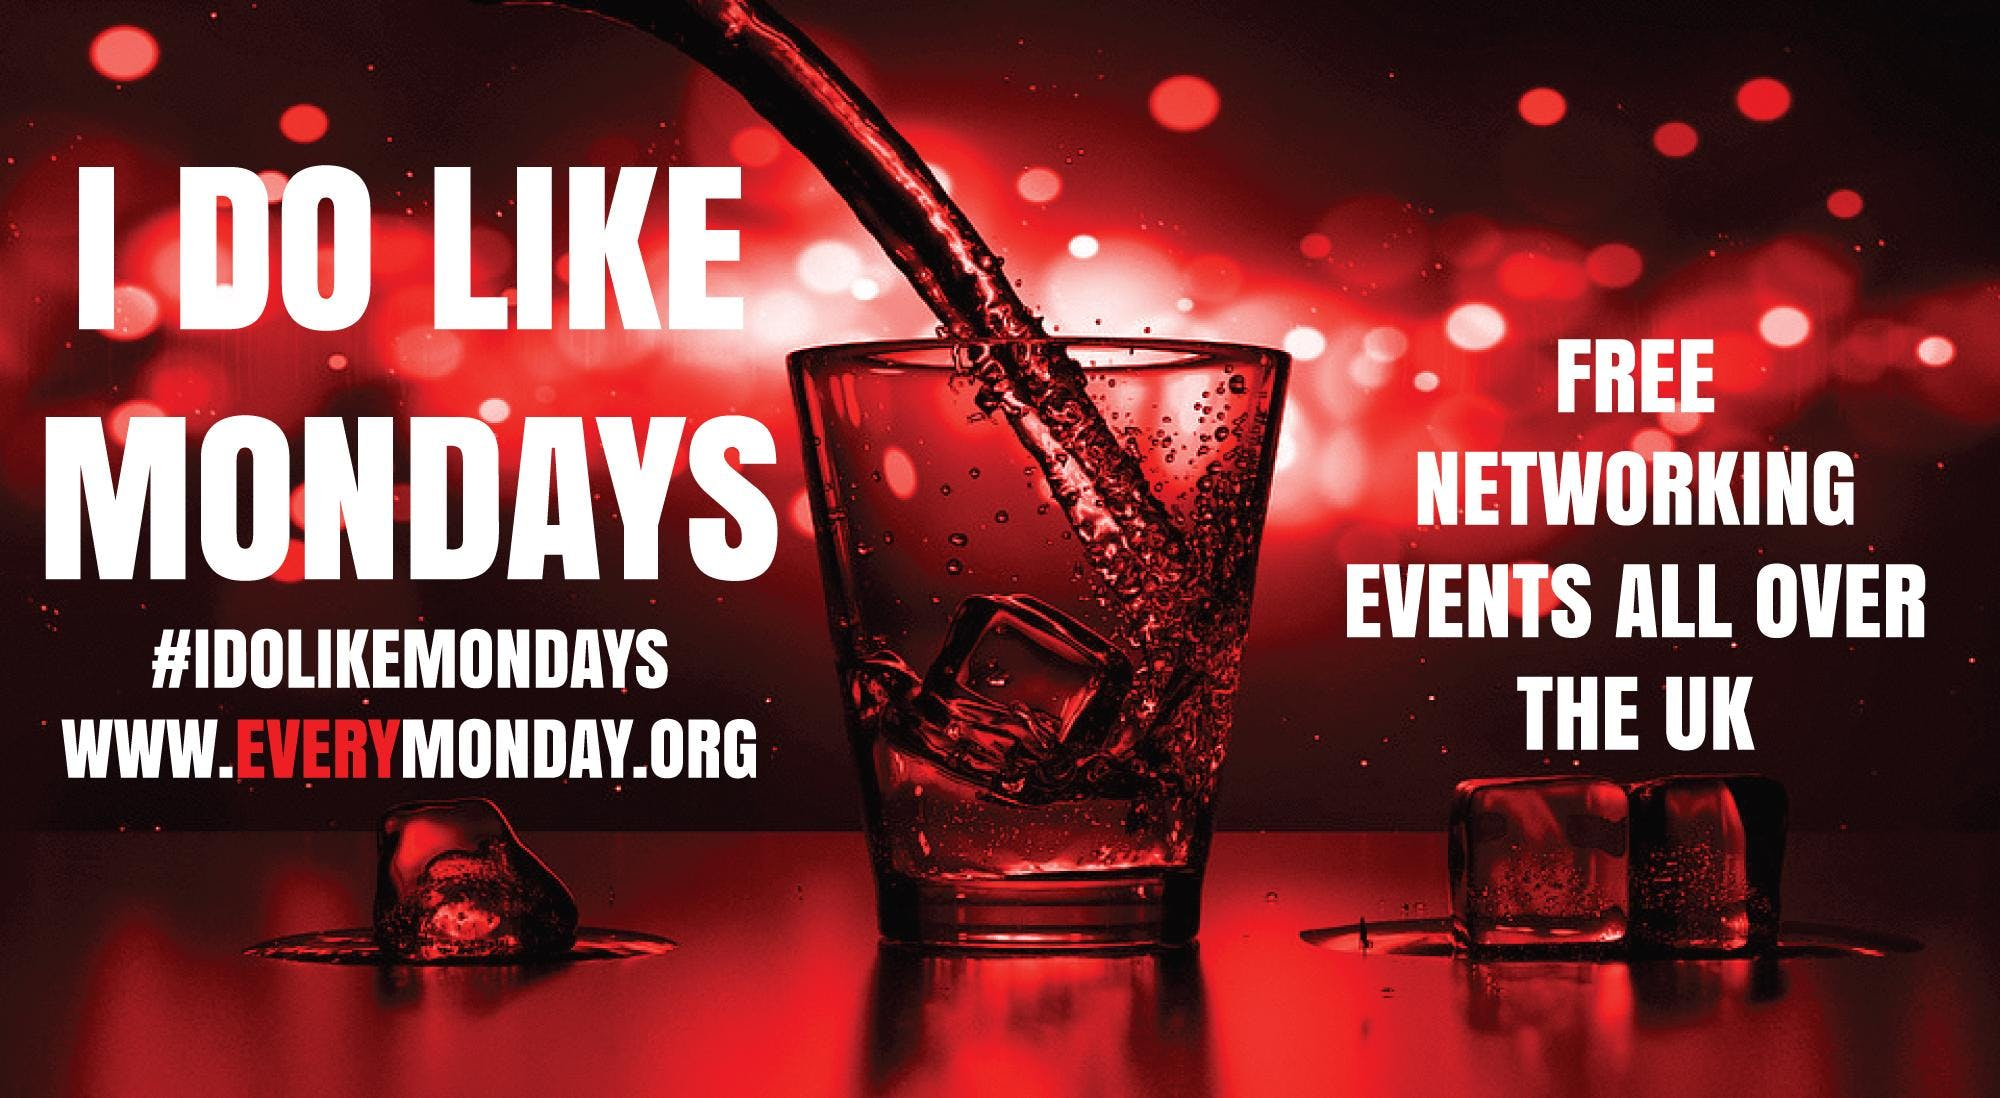 I DO LIKE MONDAYS! Free networking event in Motherwell